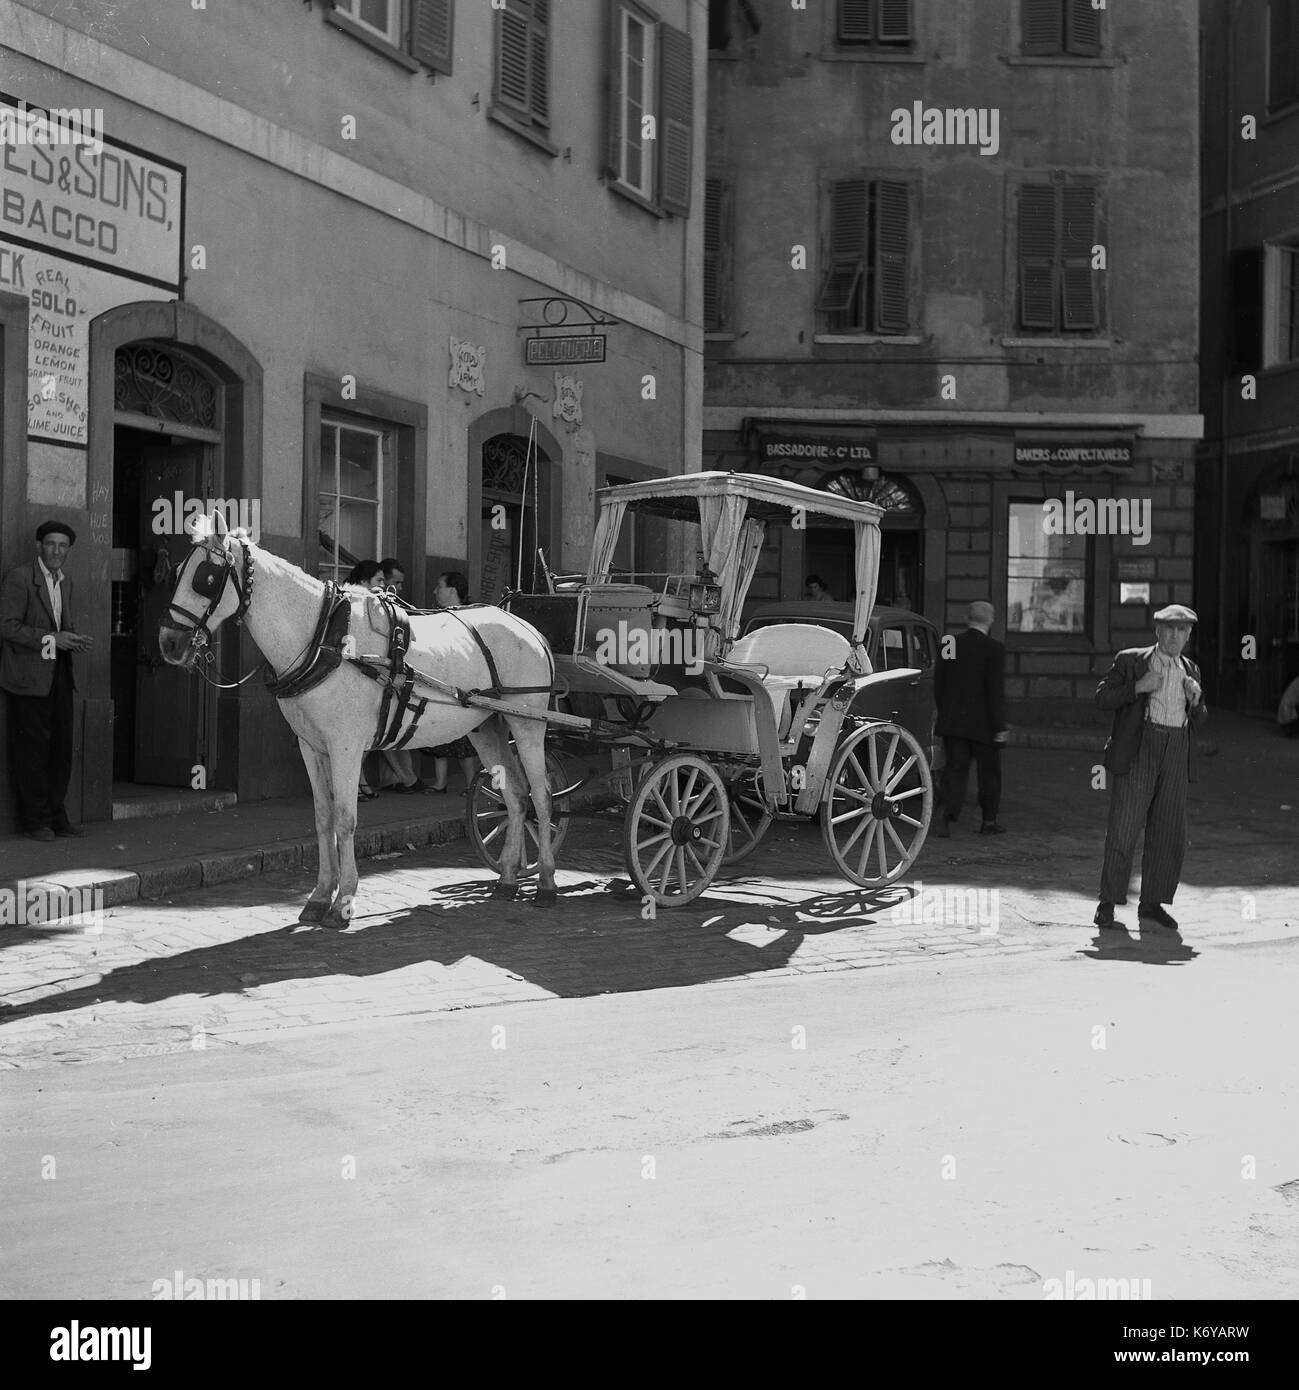 1950s, historical picture shows a pony and trap waiting for customers in a small cobbled square in Gibraltar, with Bassadone & Co, a bakers shop in the background. - Stock Image